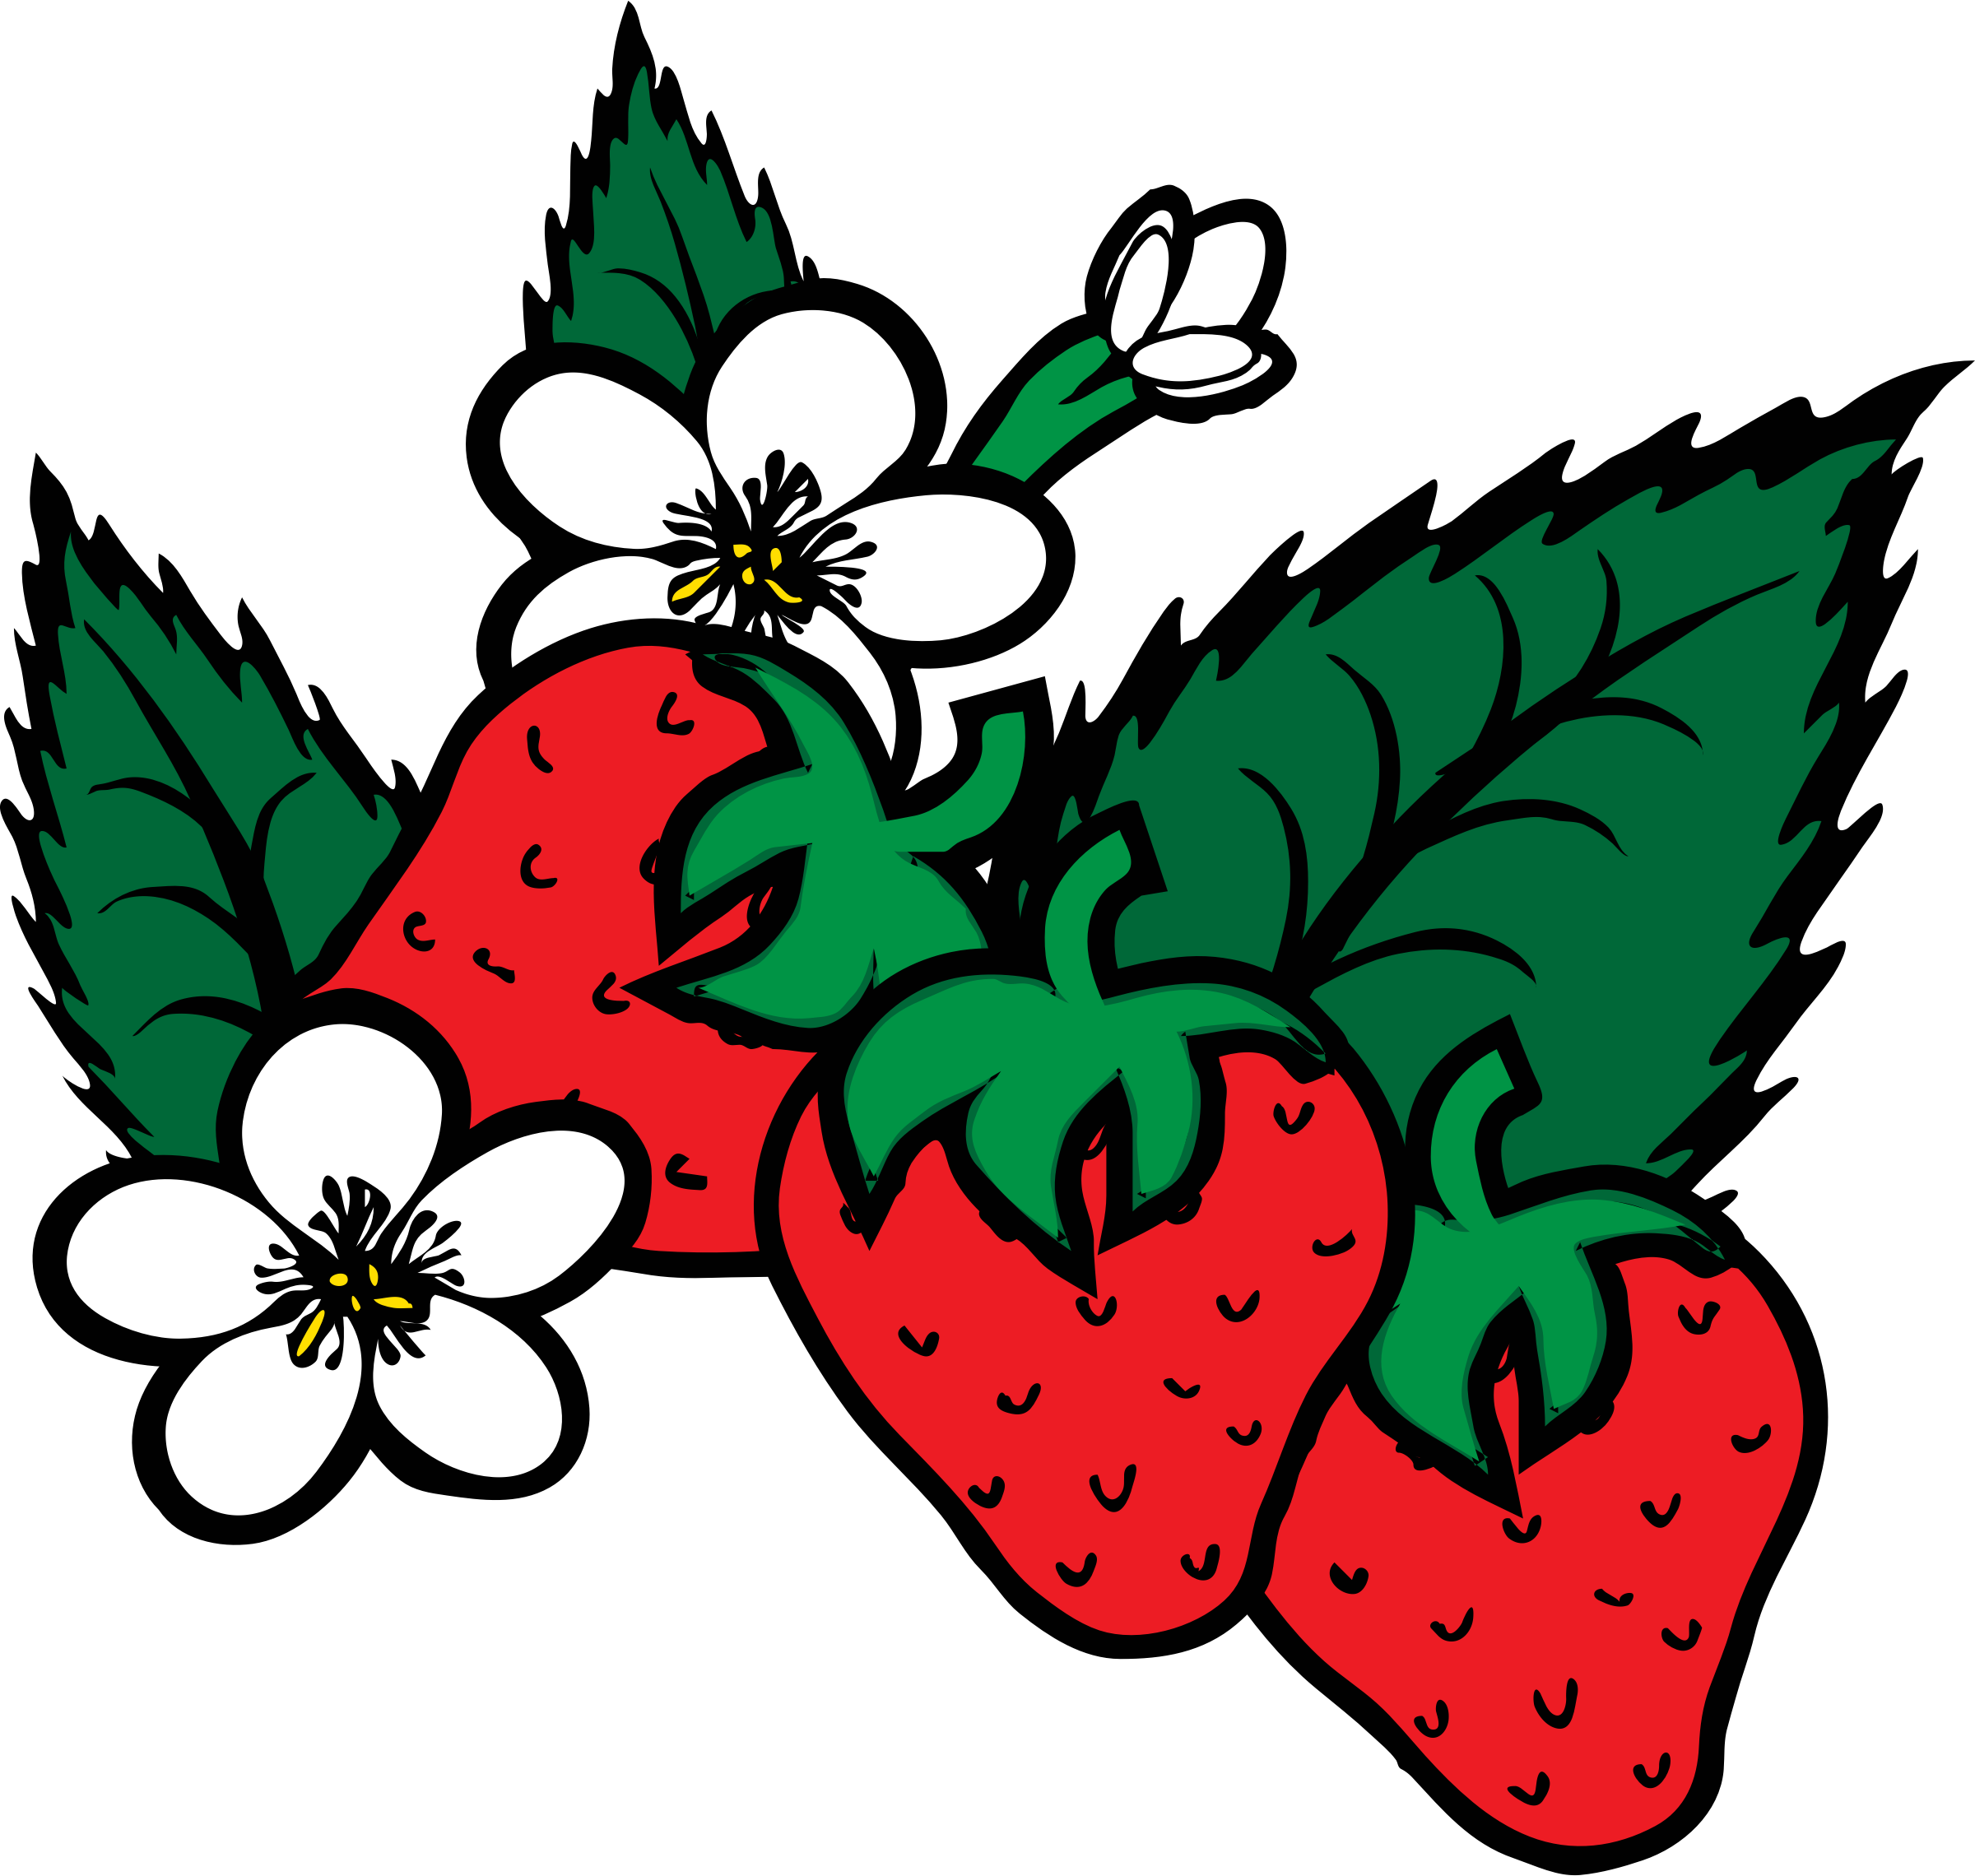 Strawberries clipart baby. Icons png free and